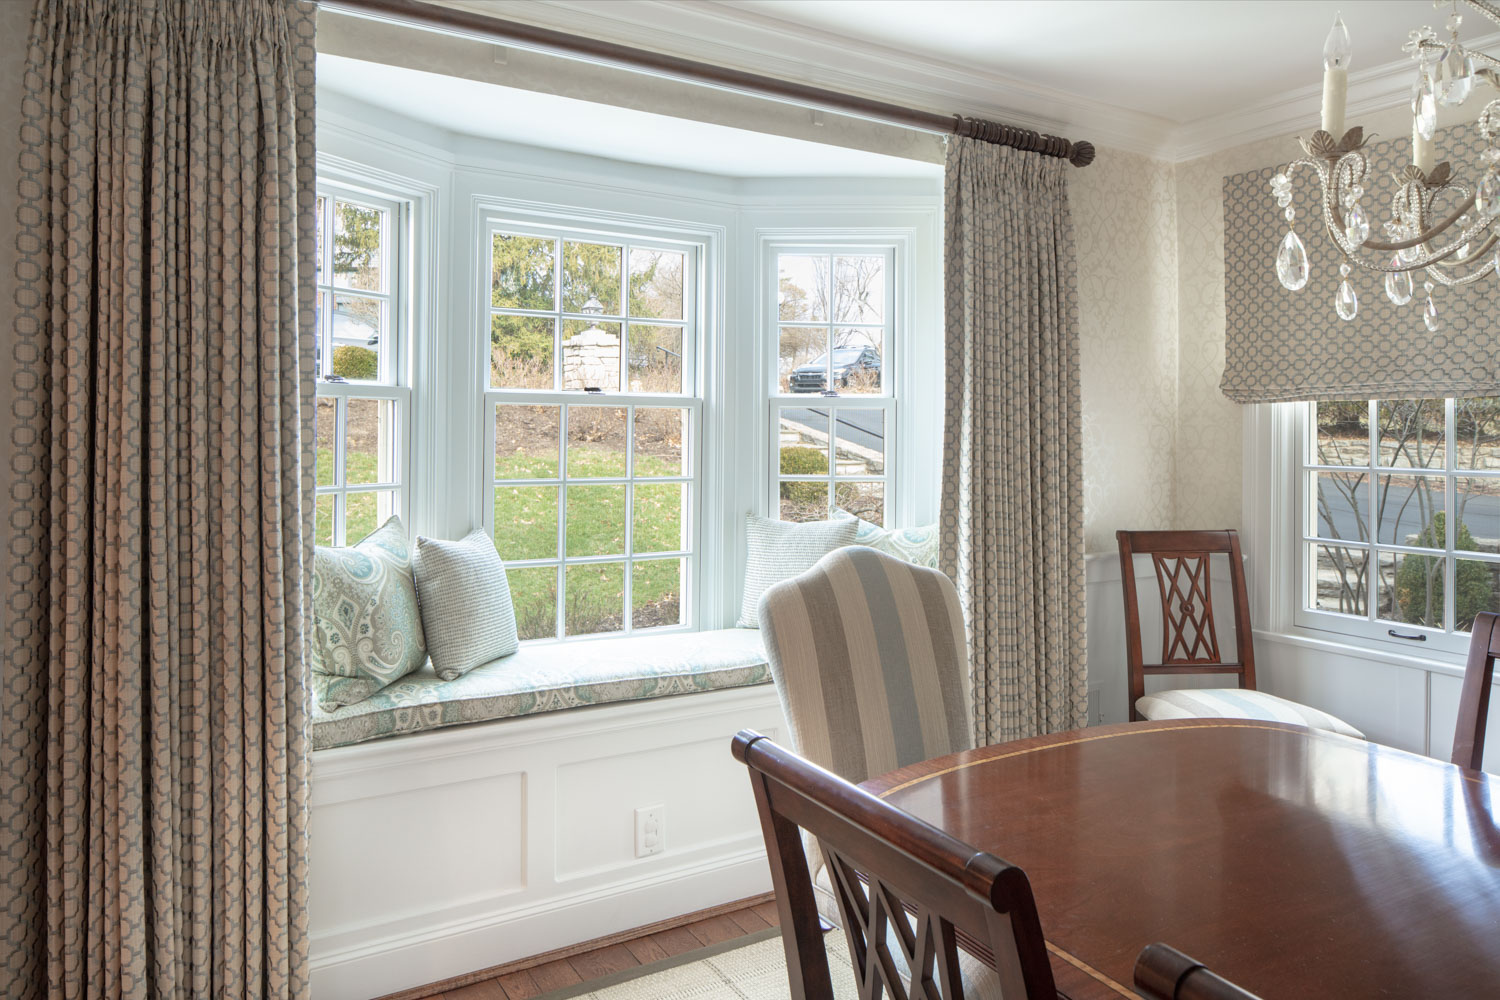 Wooden dining table and window seat with curtain